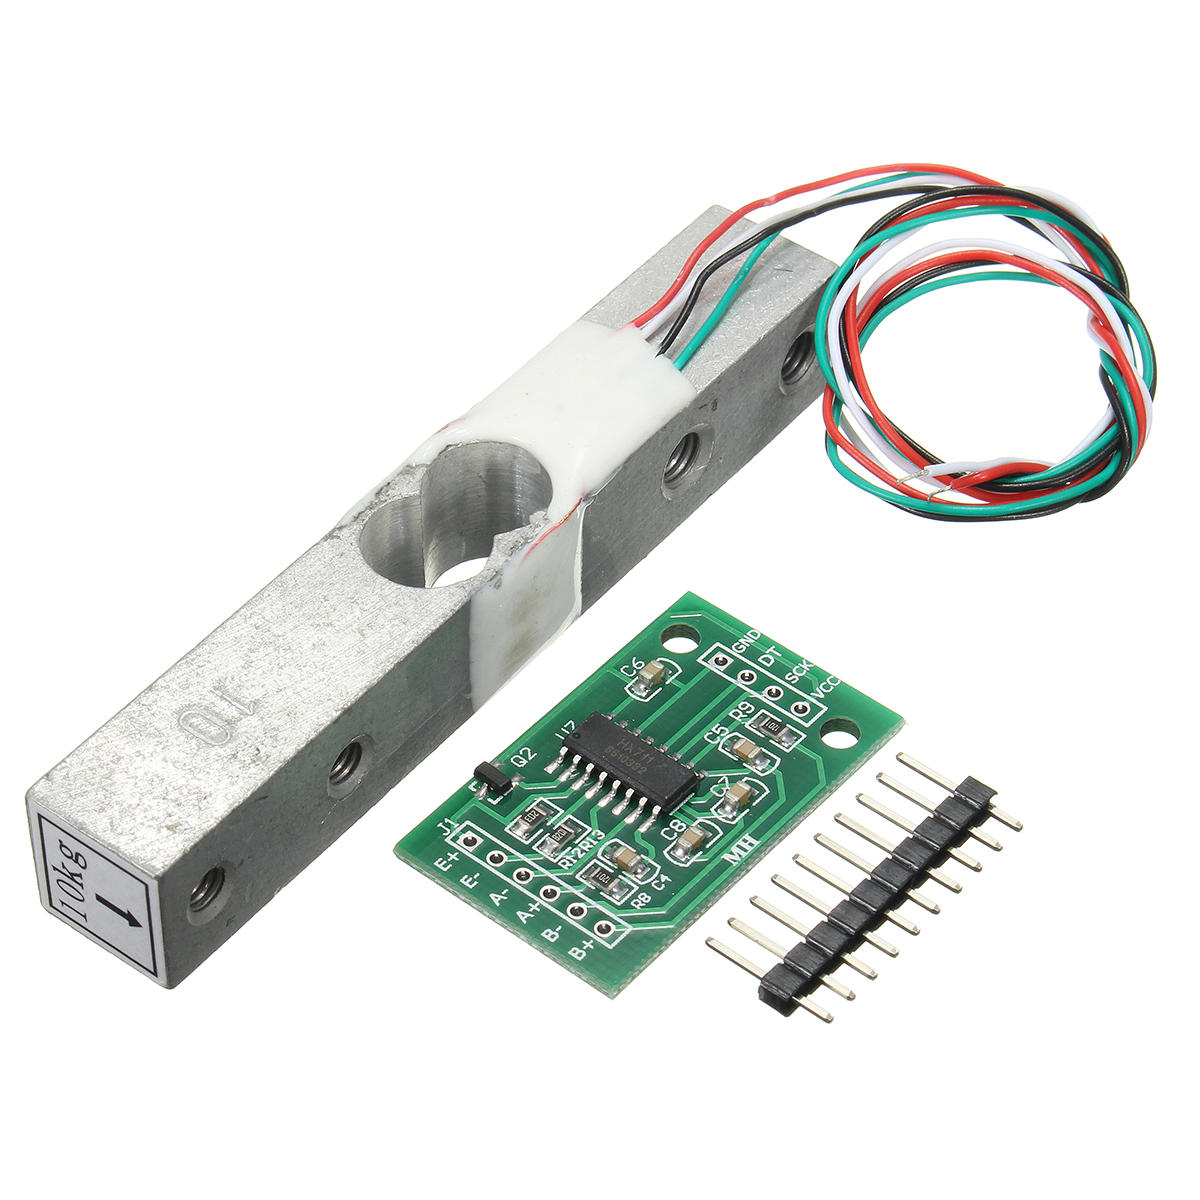 10kg Aluminum Alloy Small Scale Weighing Pressure Sensor With HX711 AD Module